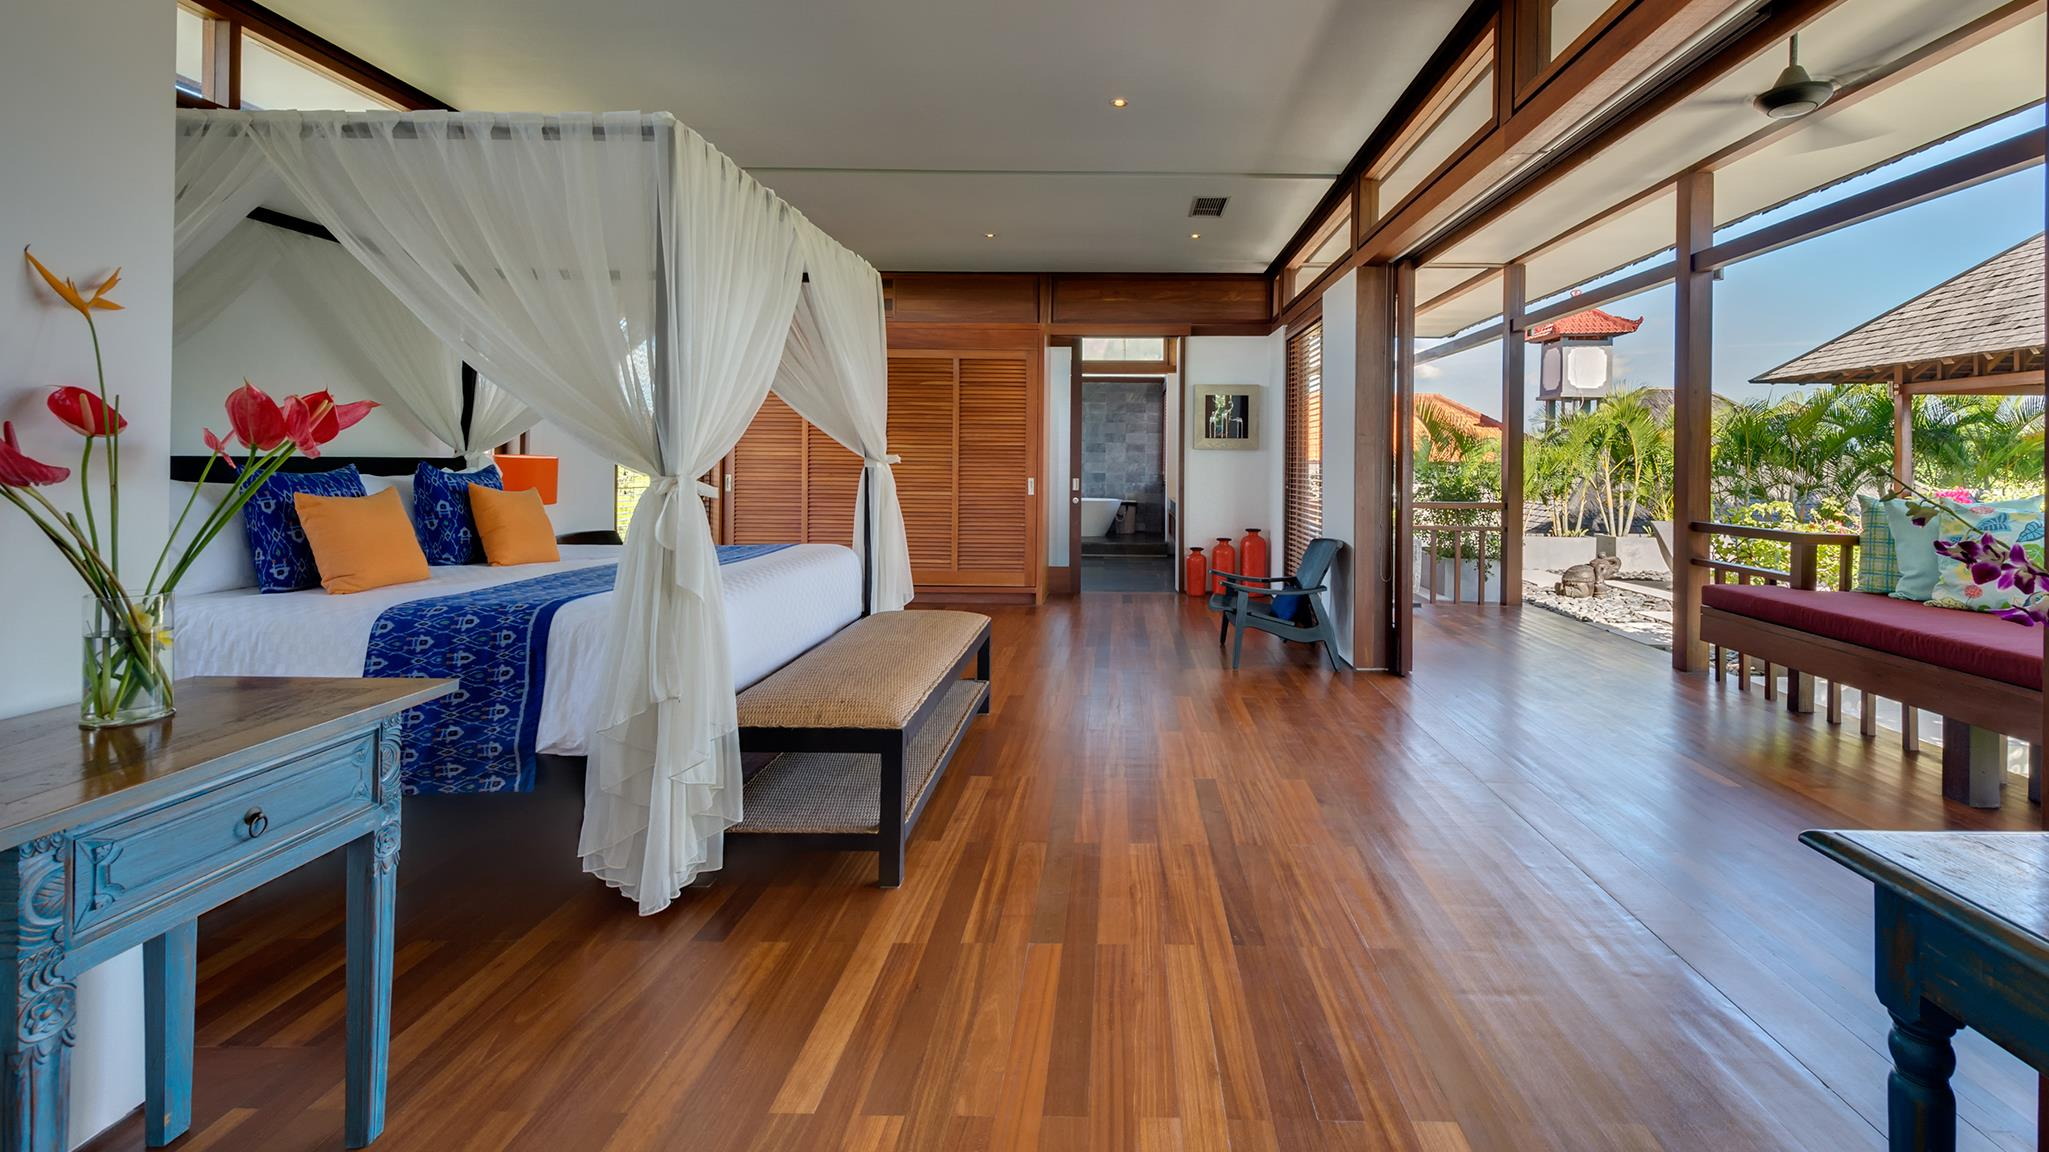 Spacious Bedroom with Wooden Floor - Villa Bendega Rato - Canggu, Bali